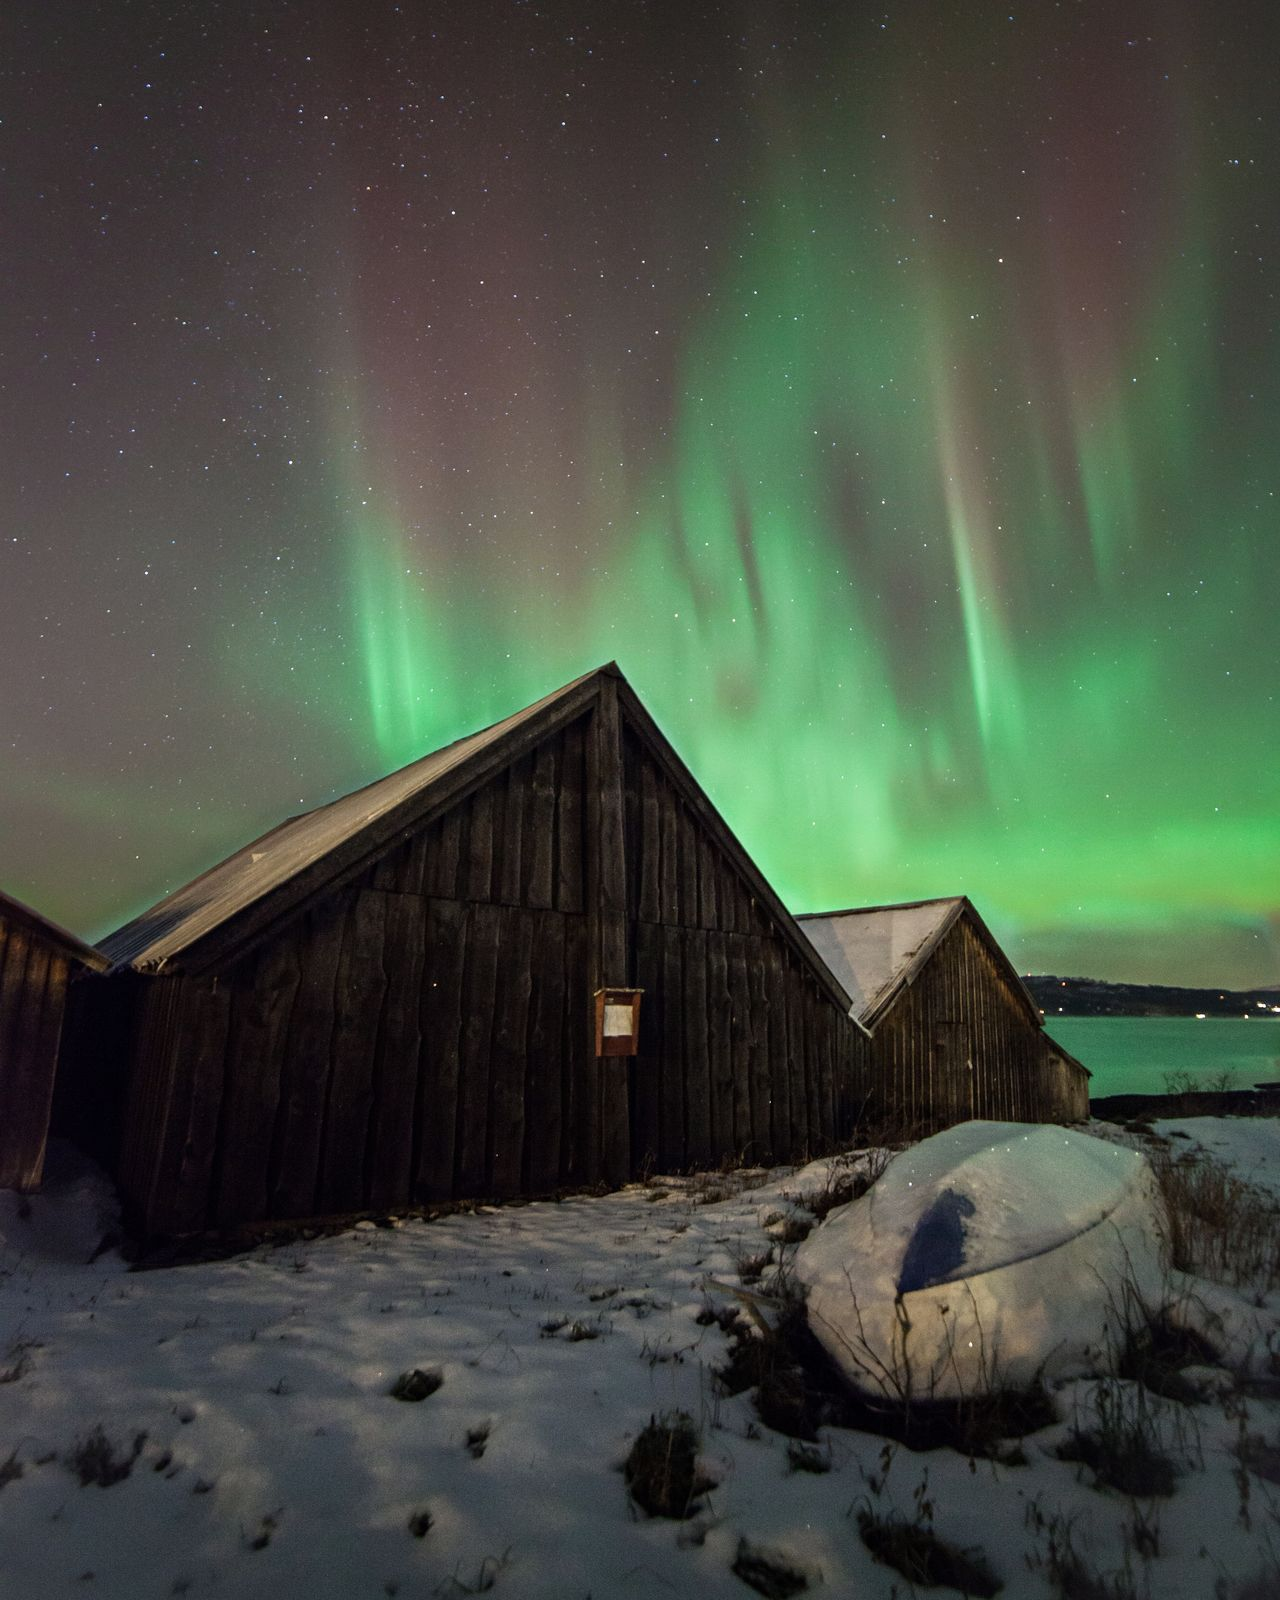 Aurora in the sky over Muruvik NorwayTrondheim Norway Aurora Borealis Aurora Norge Nature Night Photography Stars Northern Europe Night Muruvik Visitnorway Nordic Light